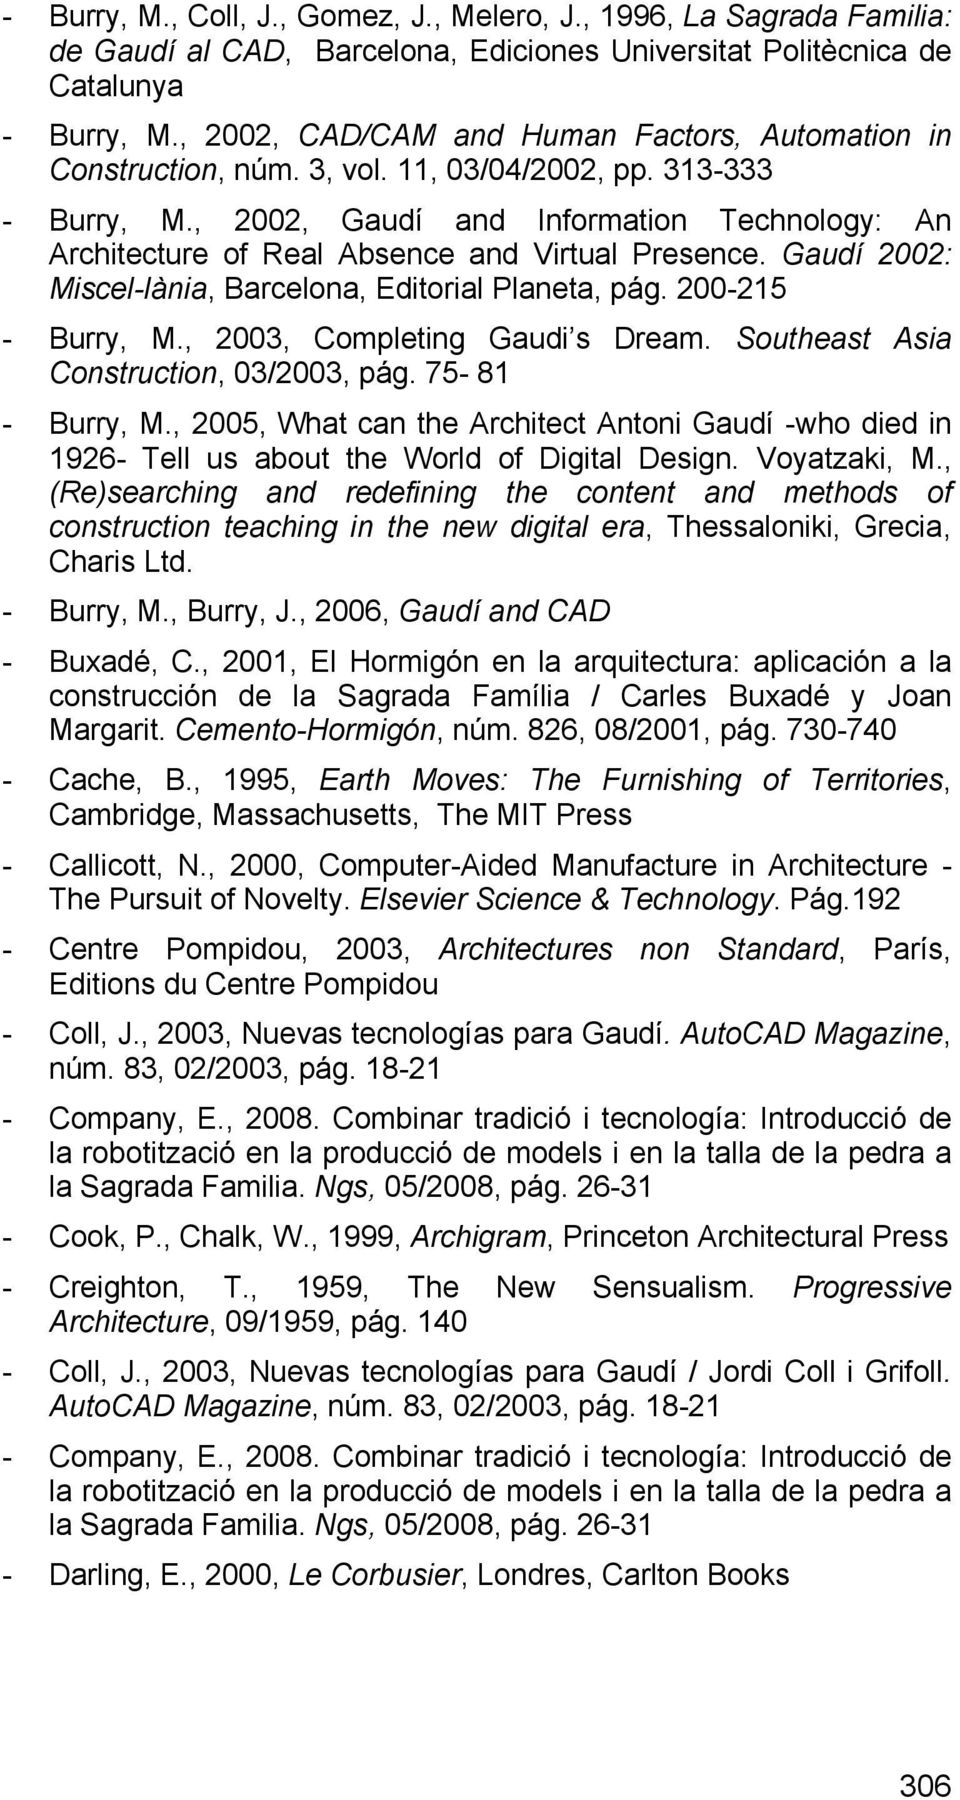 , 2002, Gaudí and Information Technology: An Architecture of Real Absence and Virtual Presence. Gaudí 2002: Miscel-lània, Barcelona, Editorial Planeta, pág. 200-215 - Burry, M.